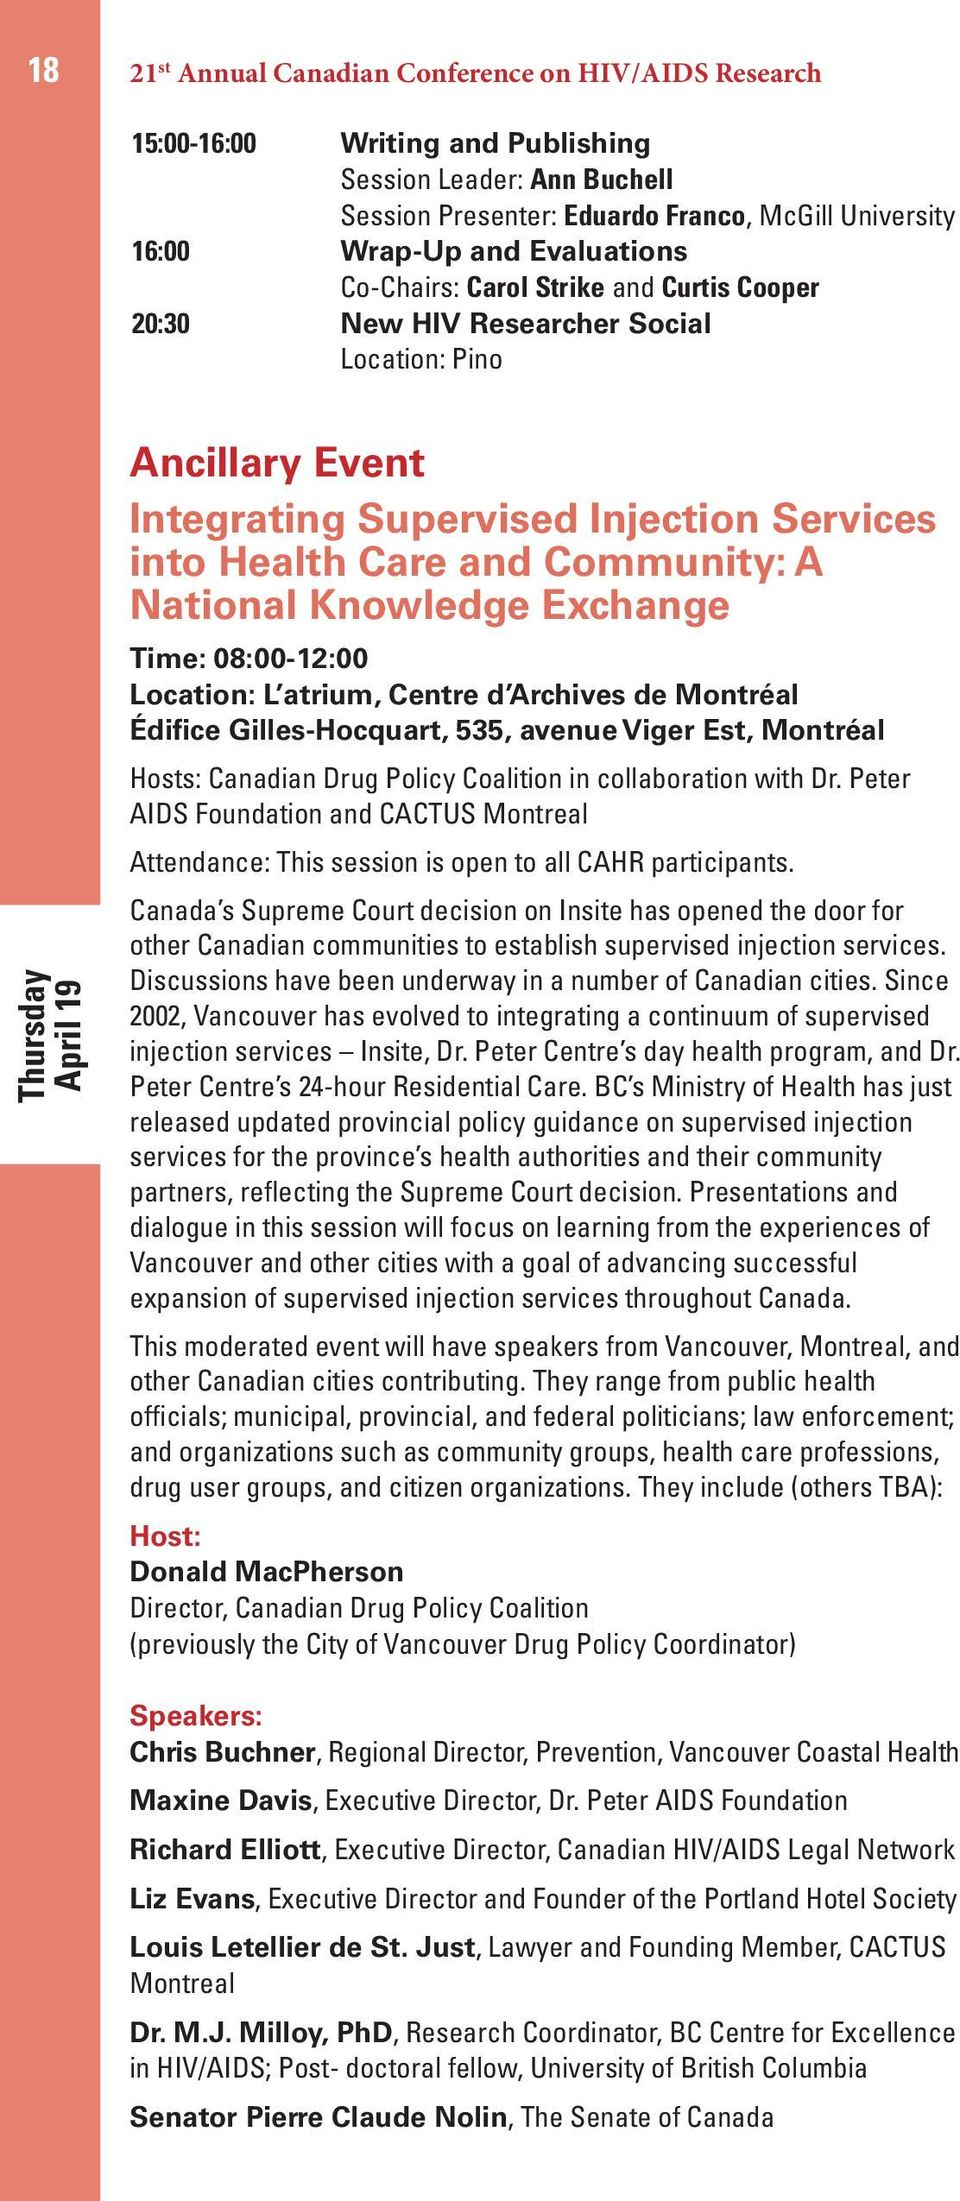 Community: A National Knowledge Exchange Time: 08:00-12:00 Location: L atrium, Centre d Archives de Montréal Édifice Gilles-Hocquart, 535, avenue Viger Est, Montréal Hosts: Canadian Drug Policy